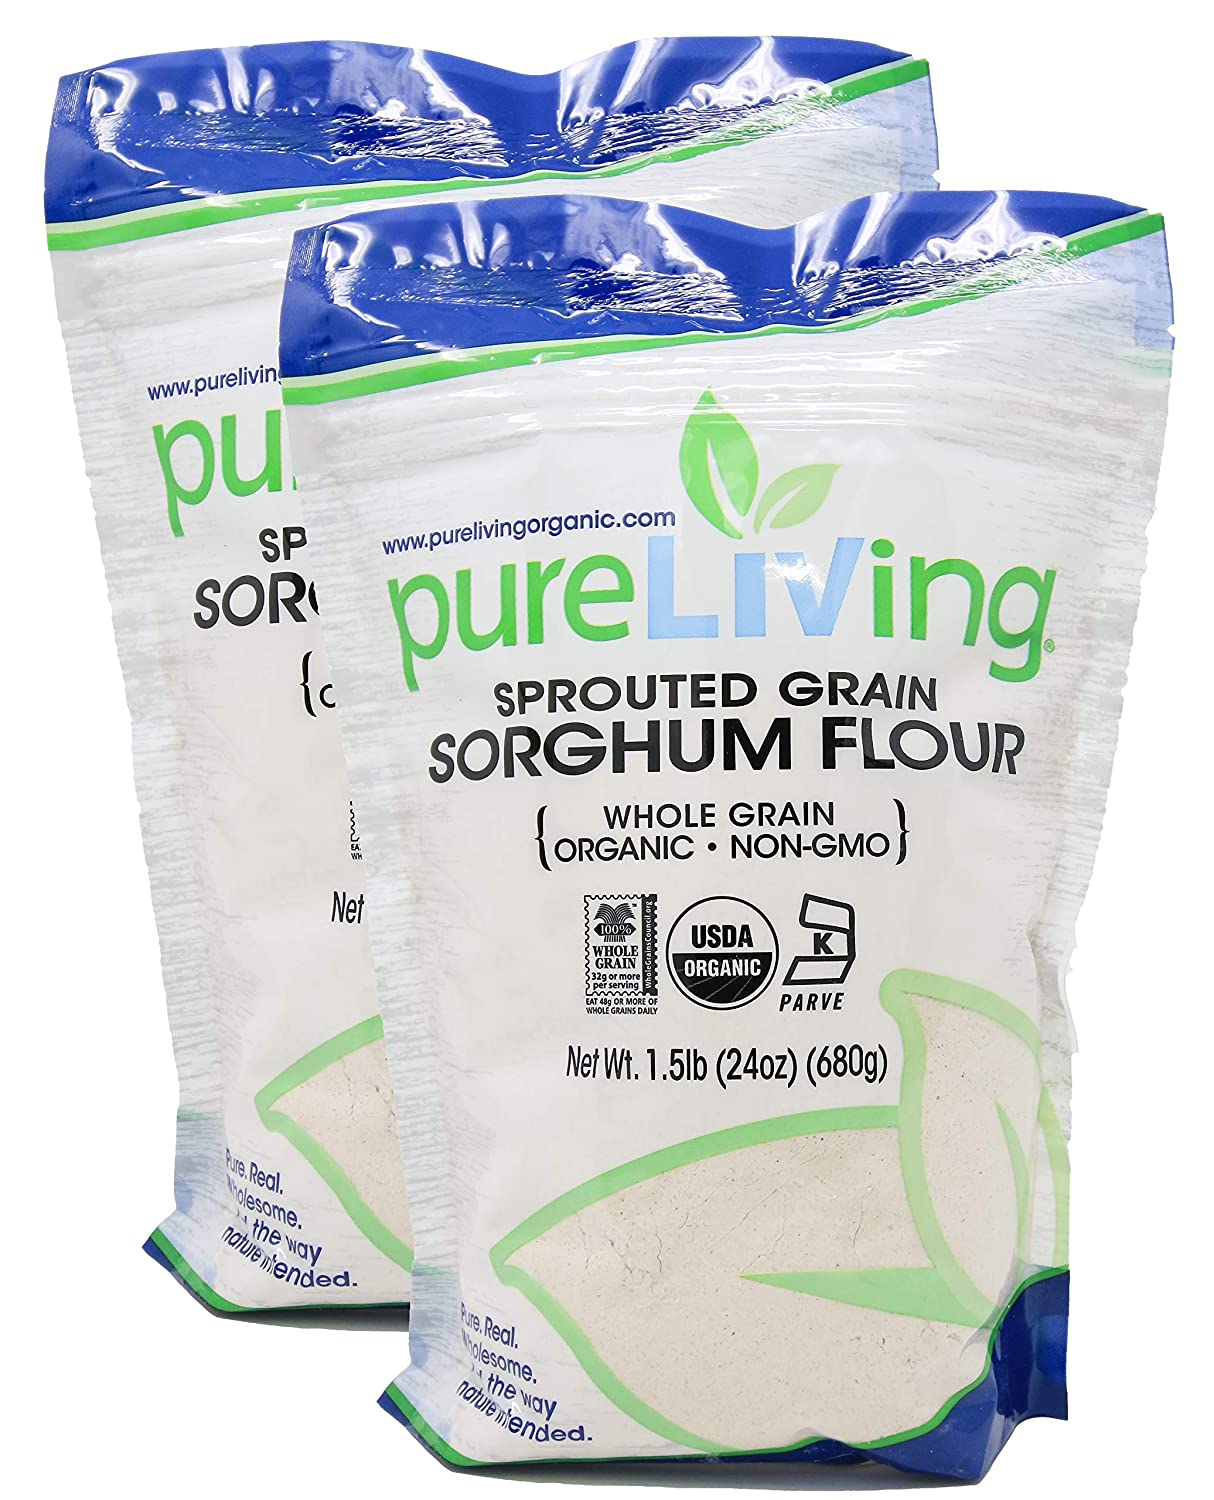 PureLiving - Organic San Diego Mall Sprouted Sorghum 24 Flour In a popularity Ounce 2 Pack